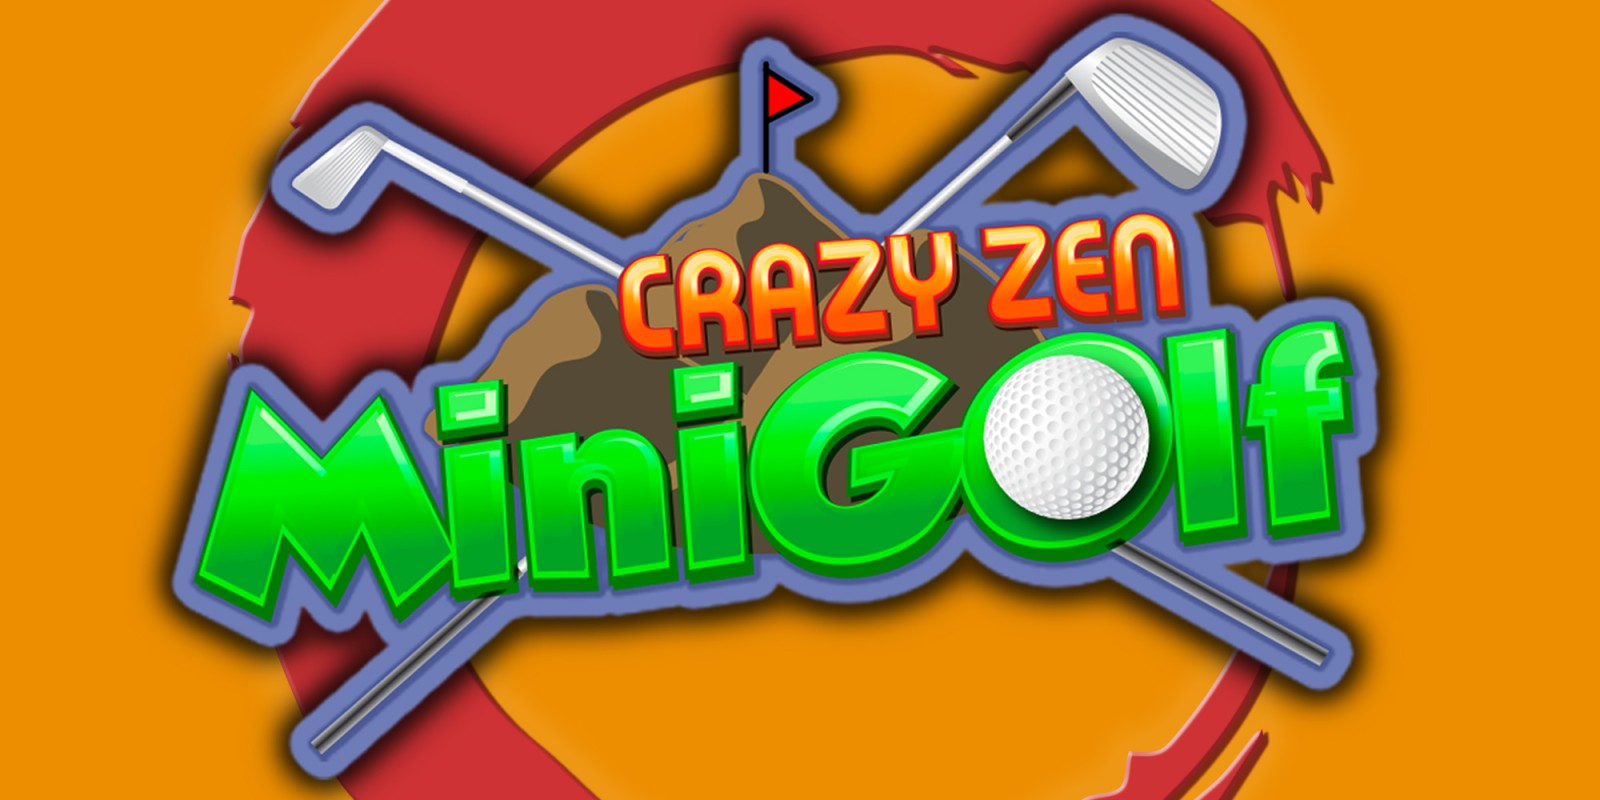 Crazy Zen Mini Golf